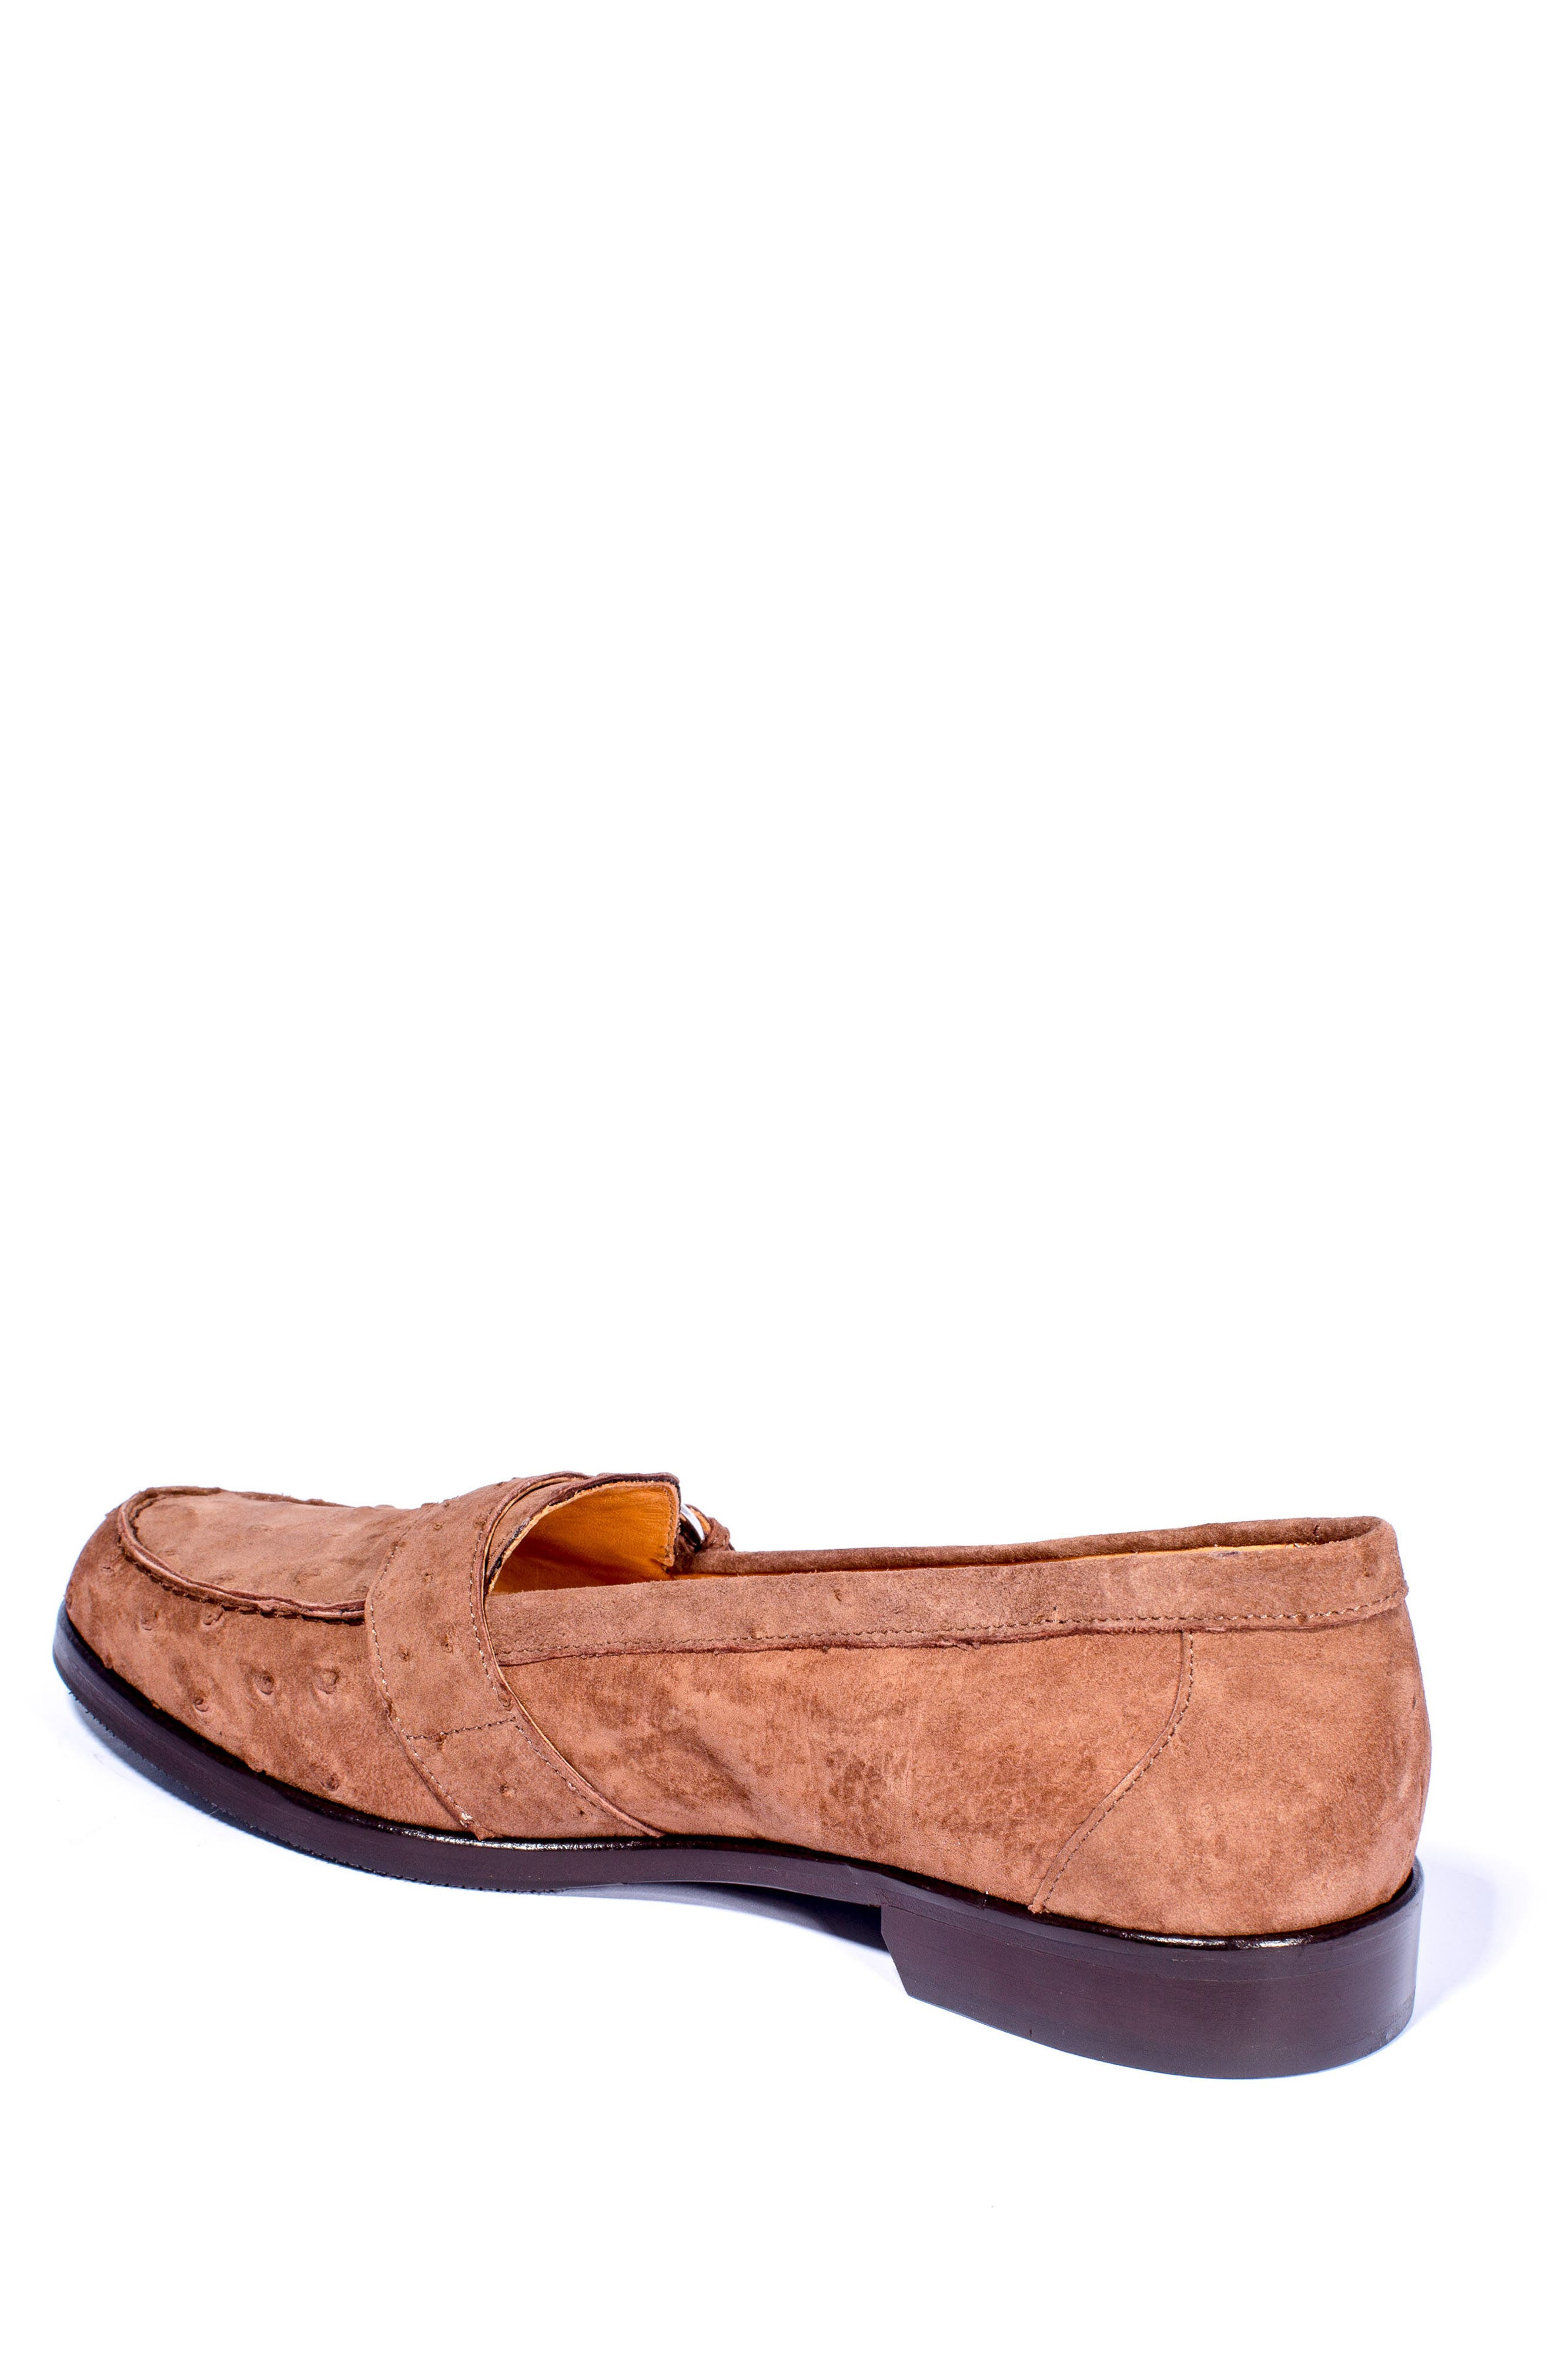 Orlando Teju Ostrich Loafer,                             Alternate thumbnail 2, color,                             200